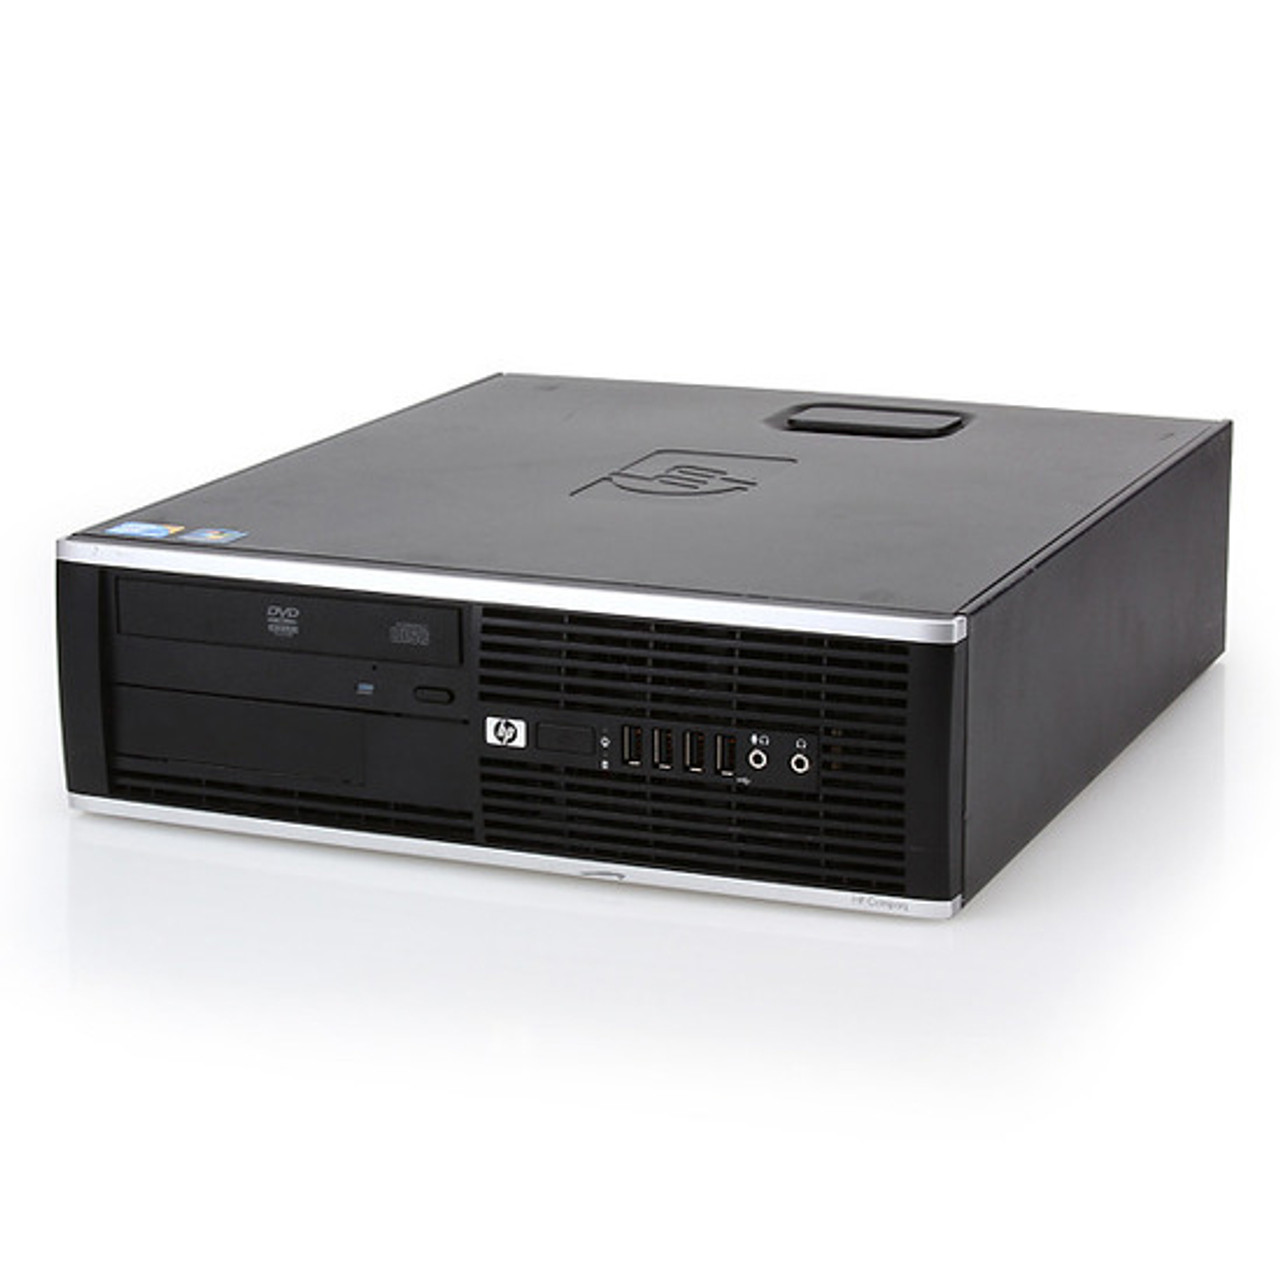 HP Compaq Elite 8100 SFF Core i3 2.93GHz, 4GB Ram, 250GB HDD, DVD-RW, Windows 7 Pro 64 Desktop Computer